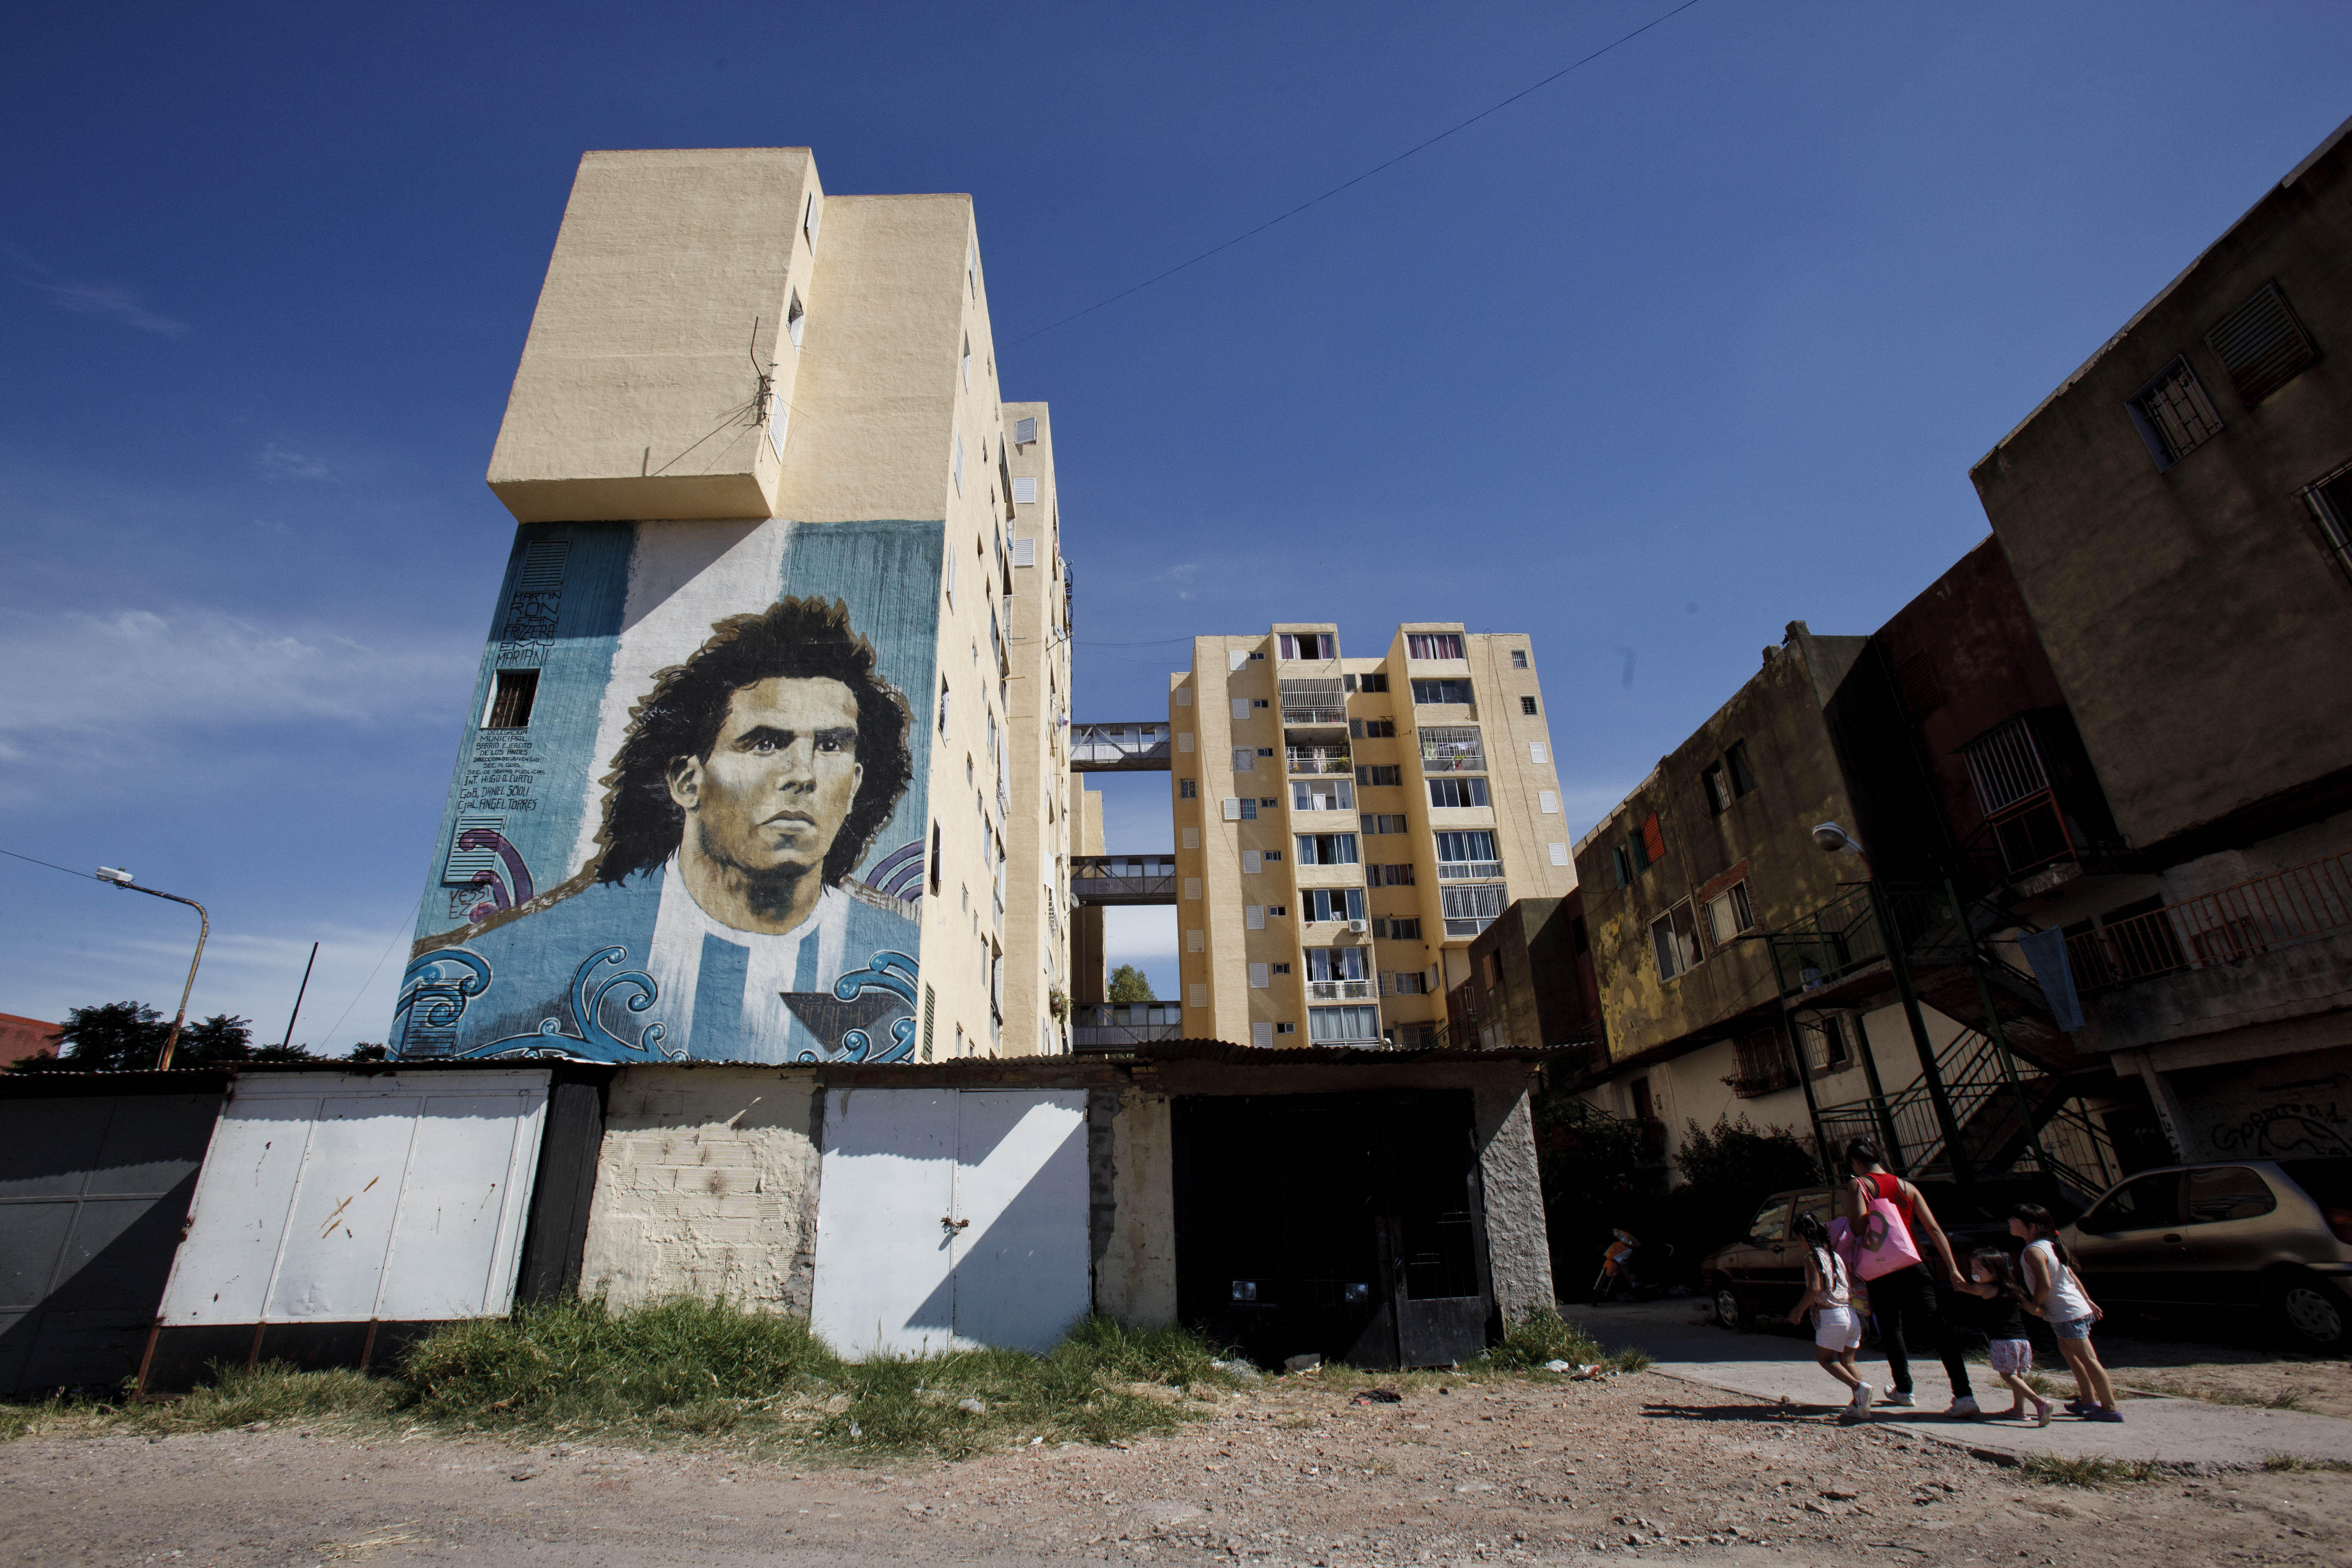 "In this March 8, 2013 photo, a mural of soccer star Carlos Tevez by artists Martin Ron, Lean Frizzera and Emy Mariani covers the Fuerte Apache apartment complex where Tevez grew up in Buenos Aires, Argentina, Friday, March 8, 2013 . The painting of Tevez is part of a project titled ""Sanctification of popular idols."" Artist Martin Ron said they painted Tevez on the building where the idol was born and grew up, which is also near a soccer field, to inspire youth who play there. (AP Photo/Natacha Pisarenko)"